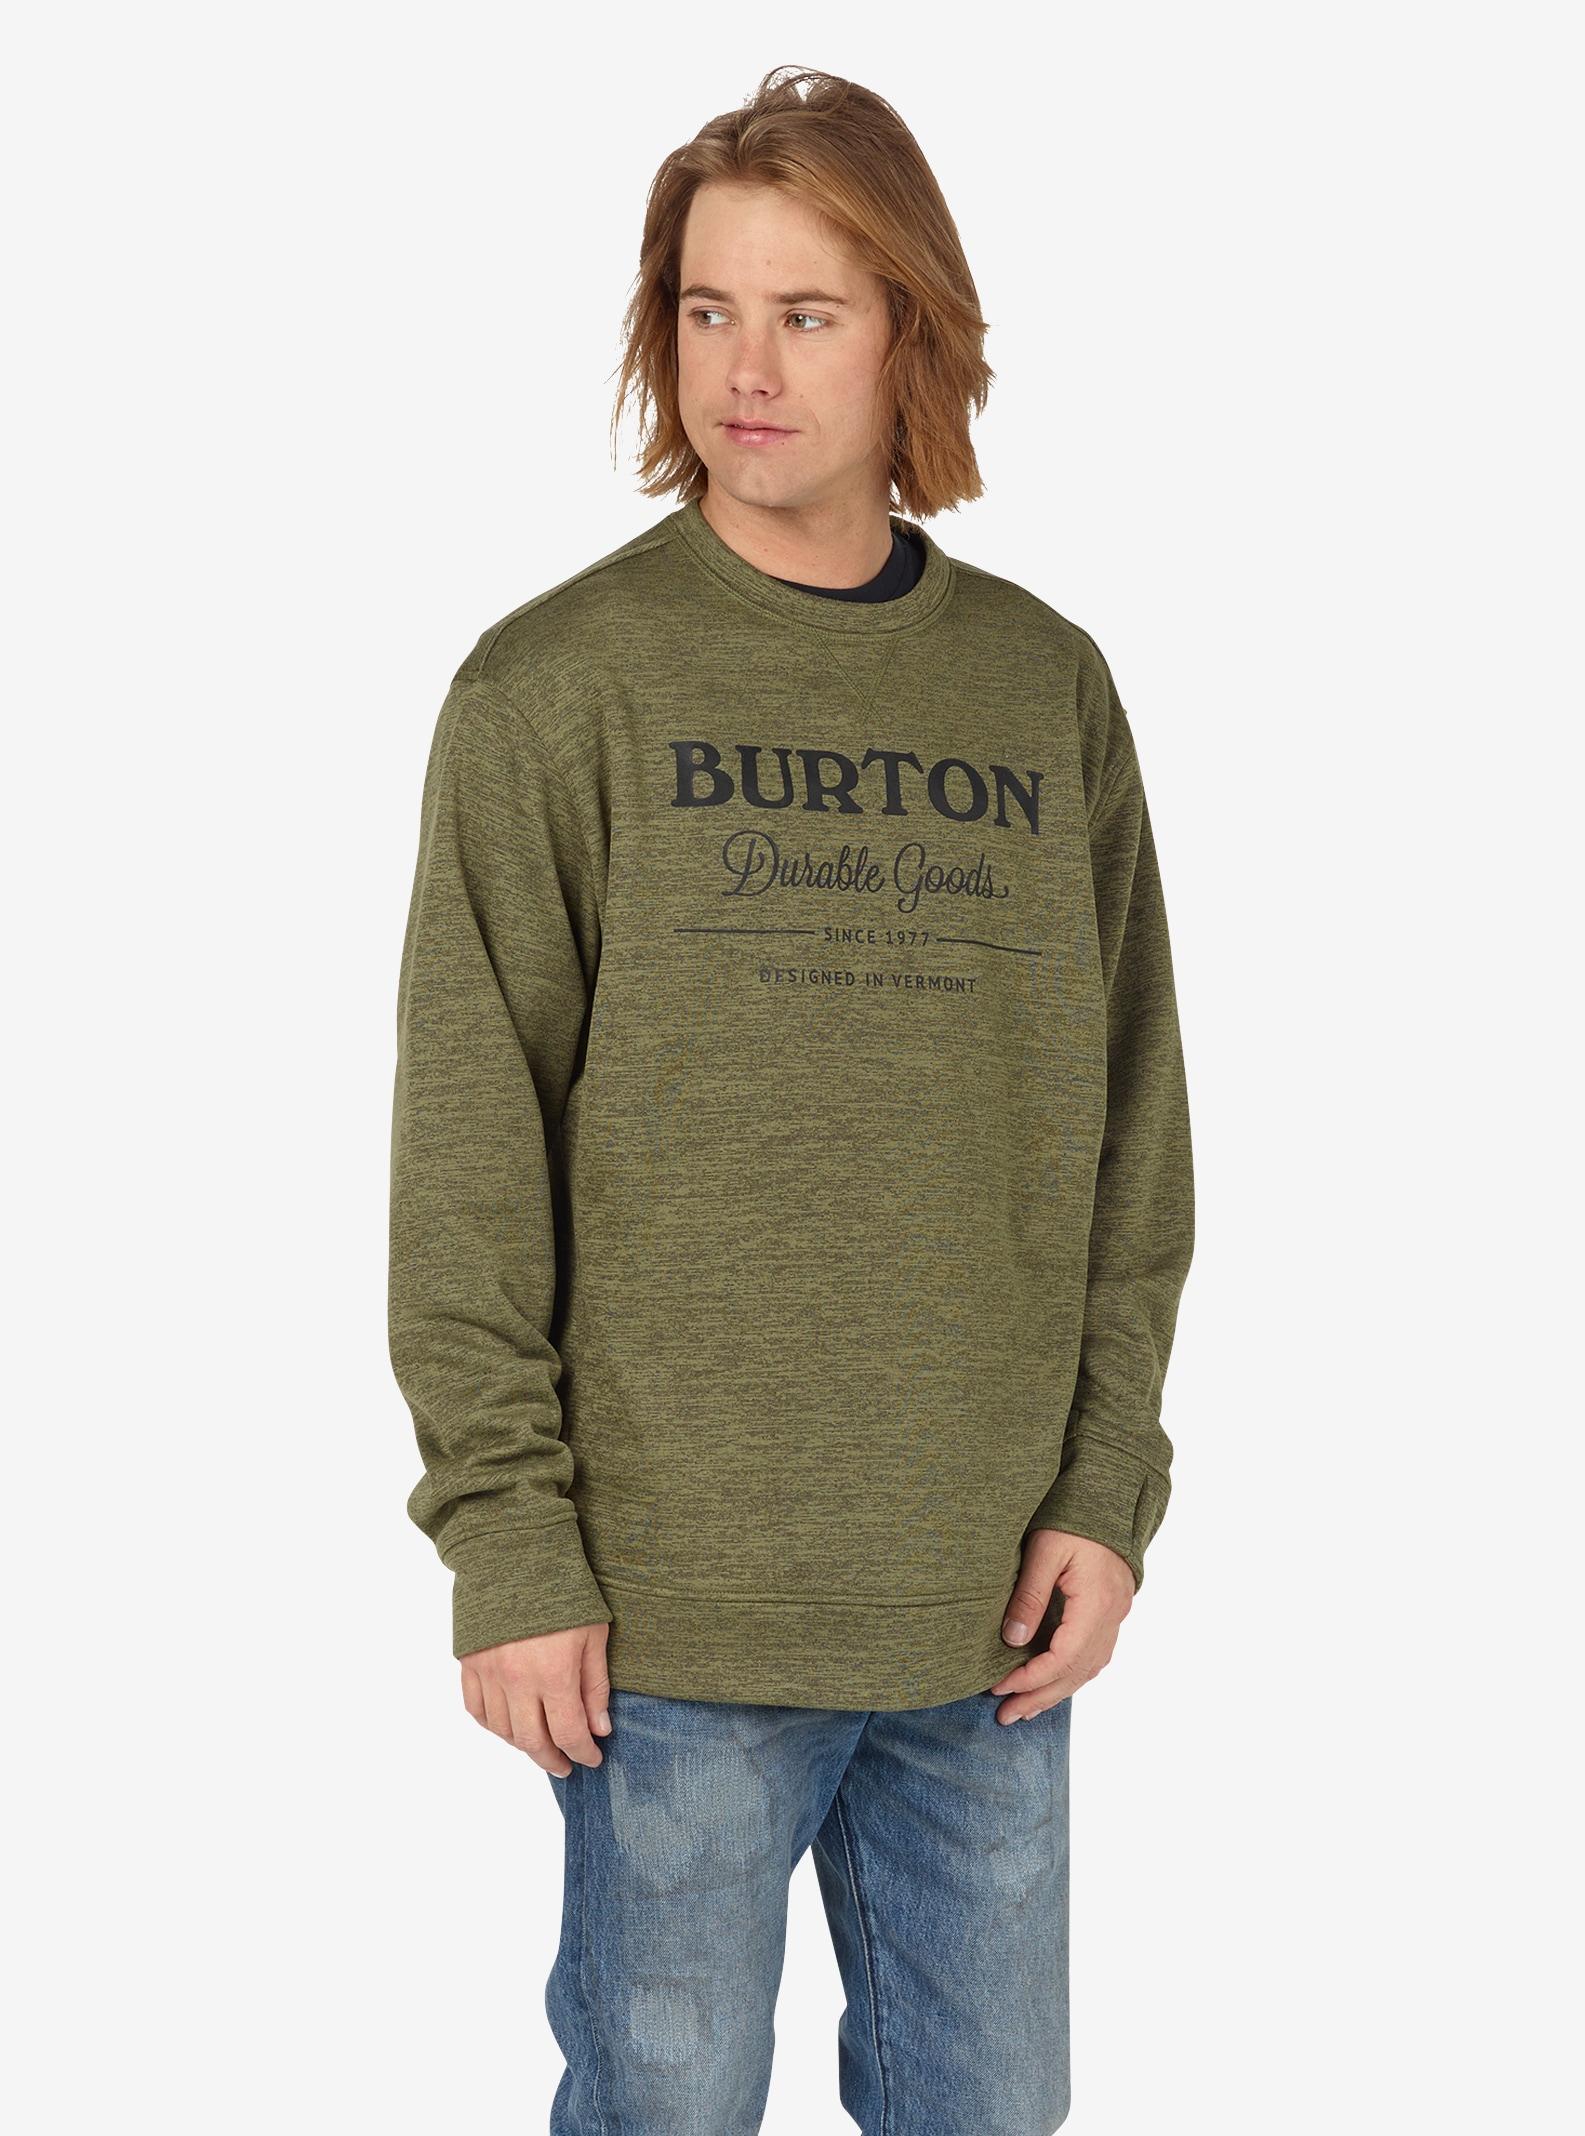 Burton - Pull ras du cou Oak homme affichage en Dusty Olive Heather